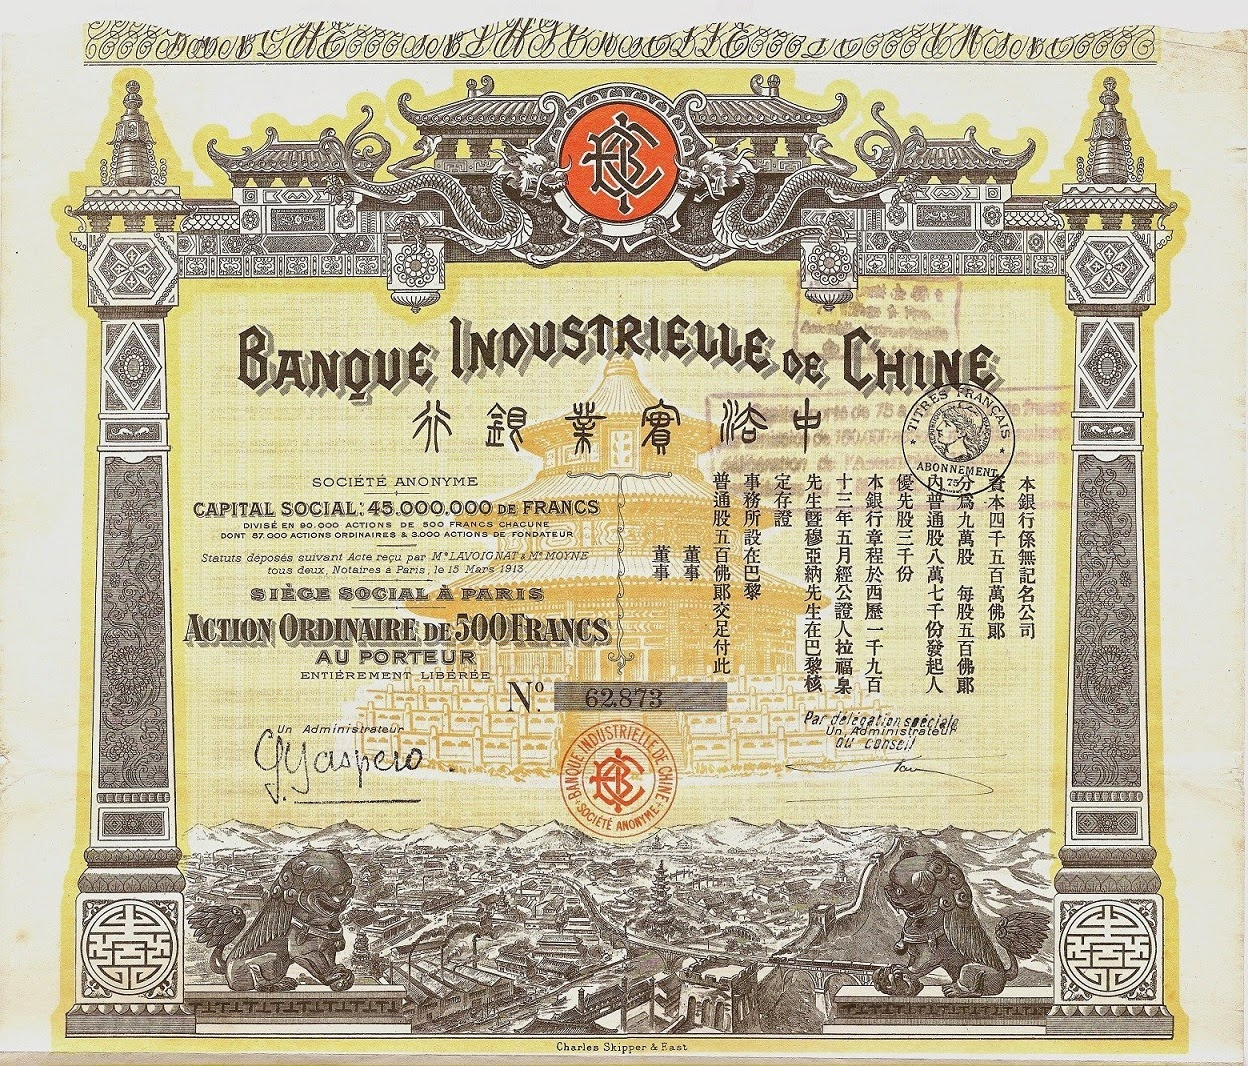 Banque Industrielle de Chine - Industrial Bank of China, share certificate printed by Charles Skipper & East